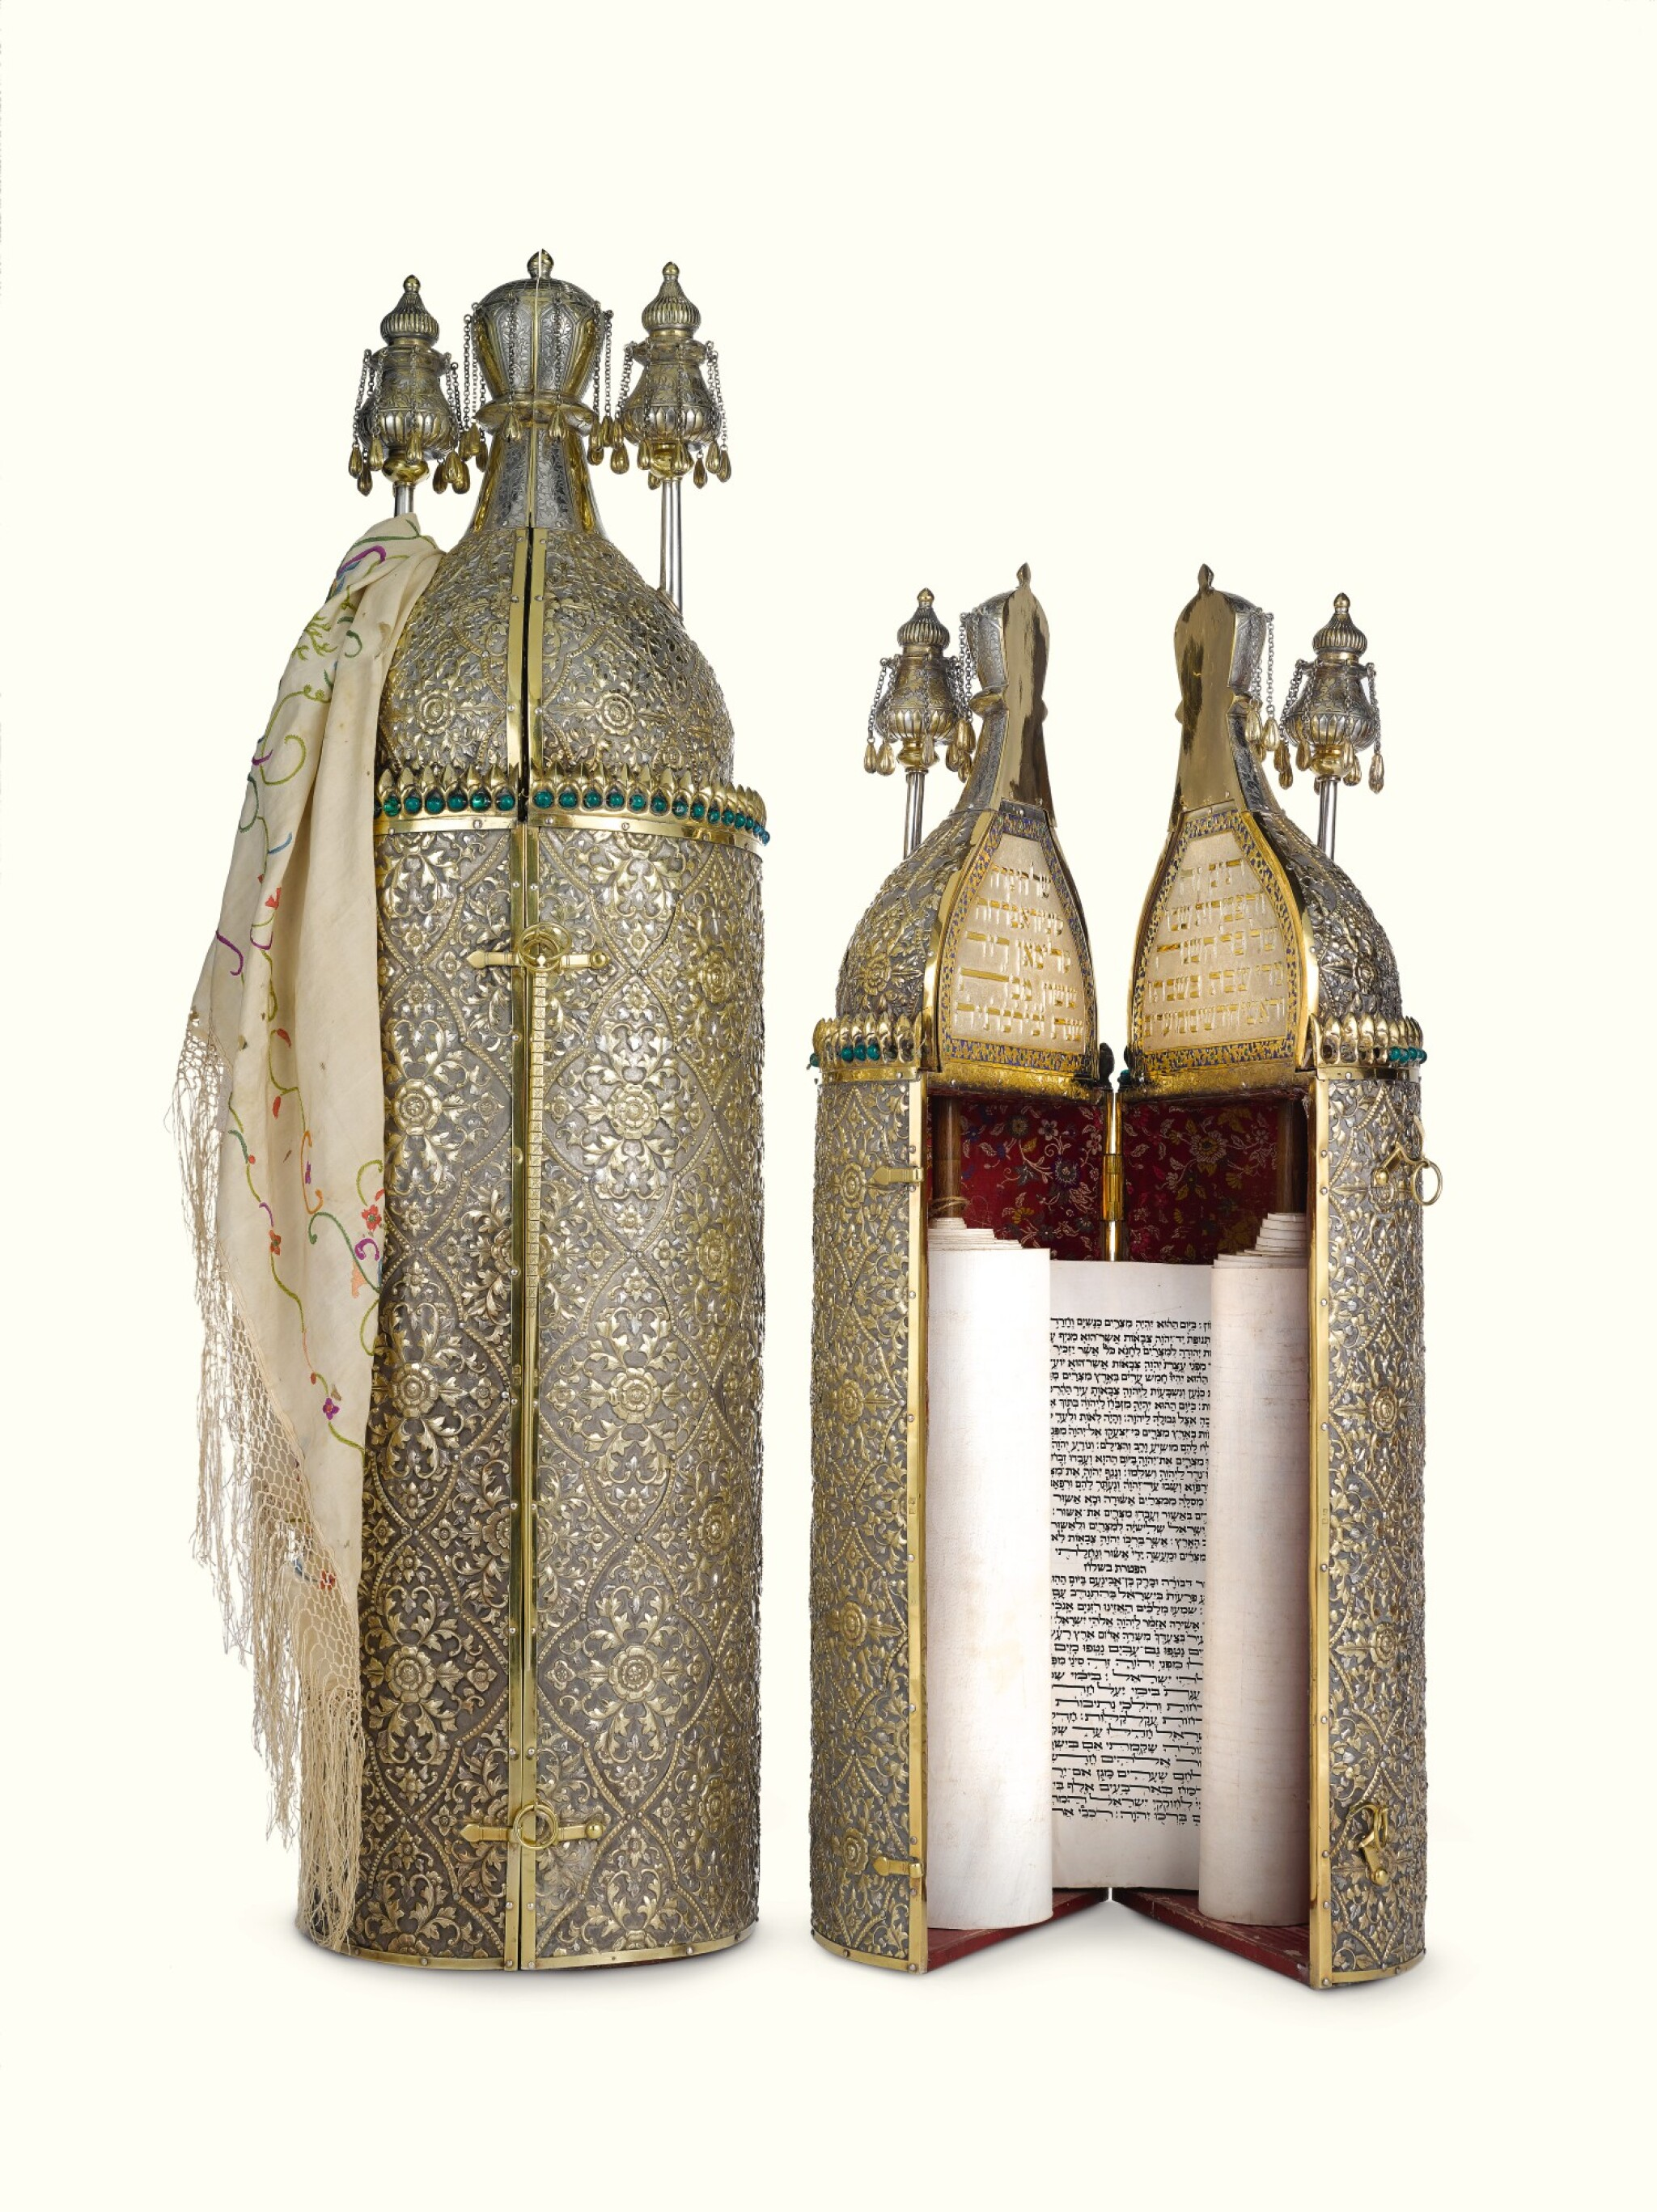 View full screen - View 1 of Lot 38. A RARE SET OF CHINESE EXPORT PARCEL-GILT SILVER-CASED TORAH SCROLL AND HAFTARAH SCROLL, THE SCROLLS SENT BY THE BEN ISH HAI TO FLORA SASSOON, THE CASES MARKED GOTHIC K, PROBABLY 1893.